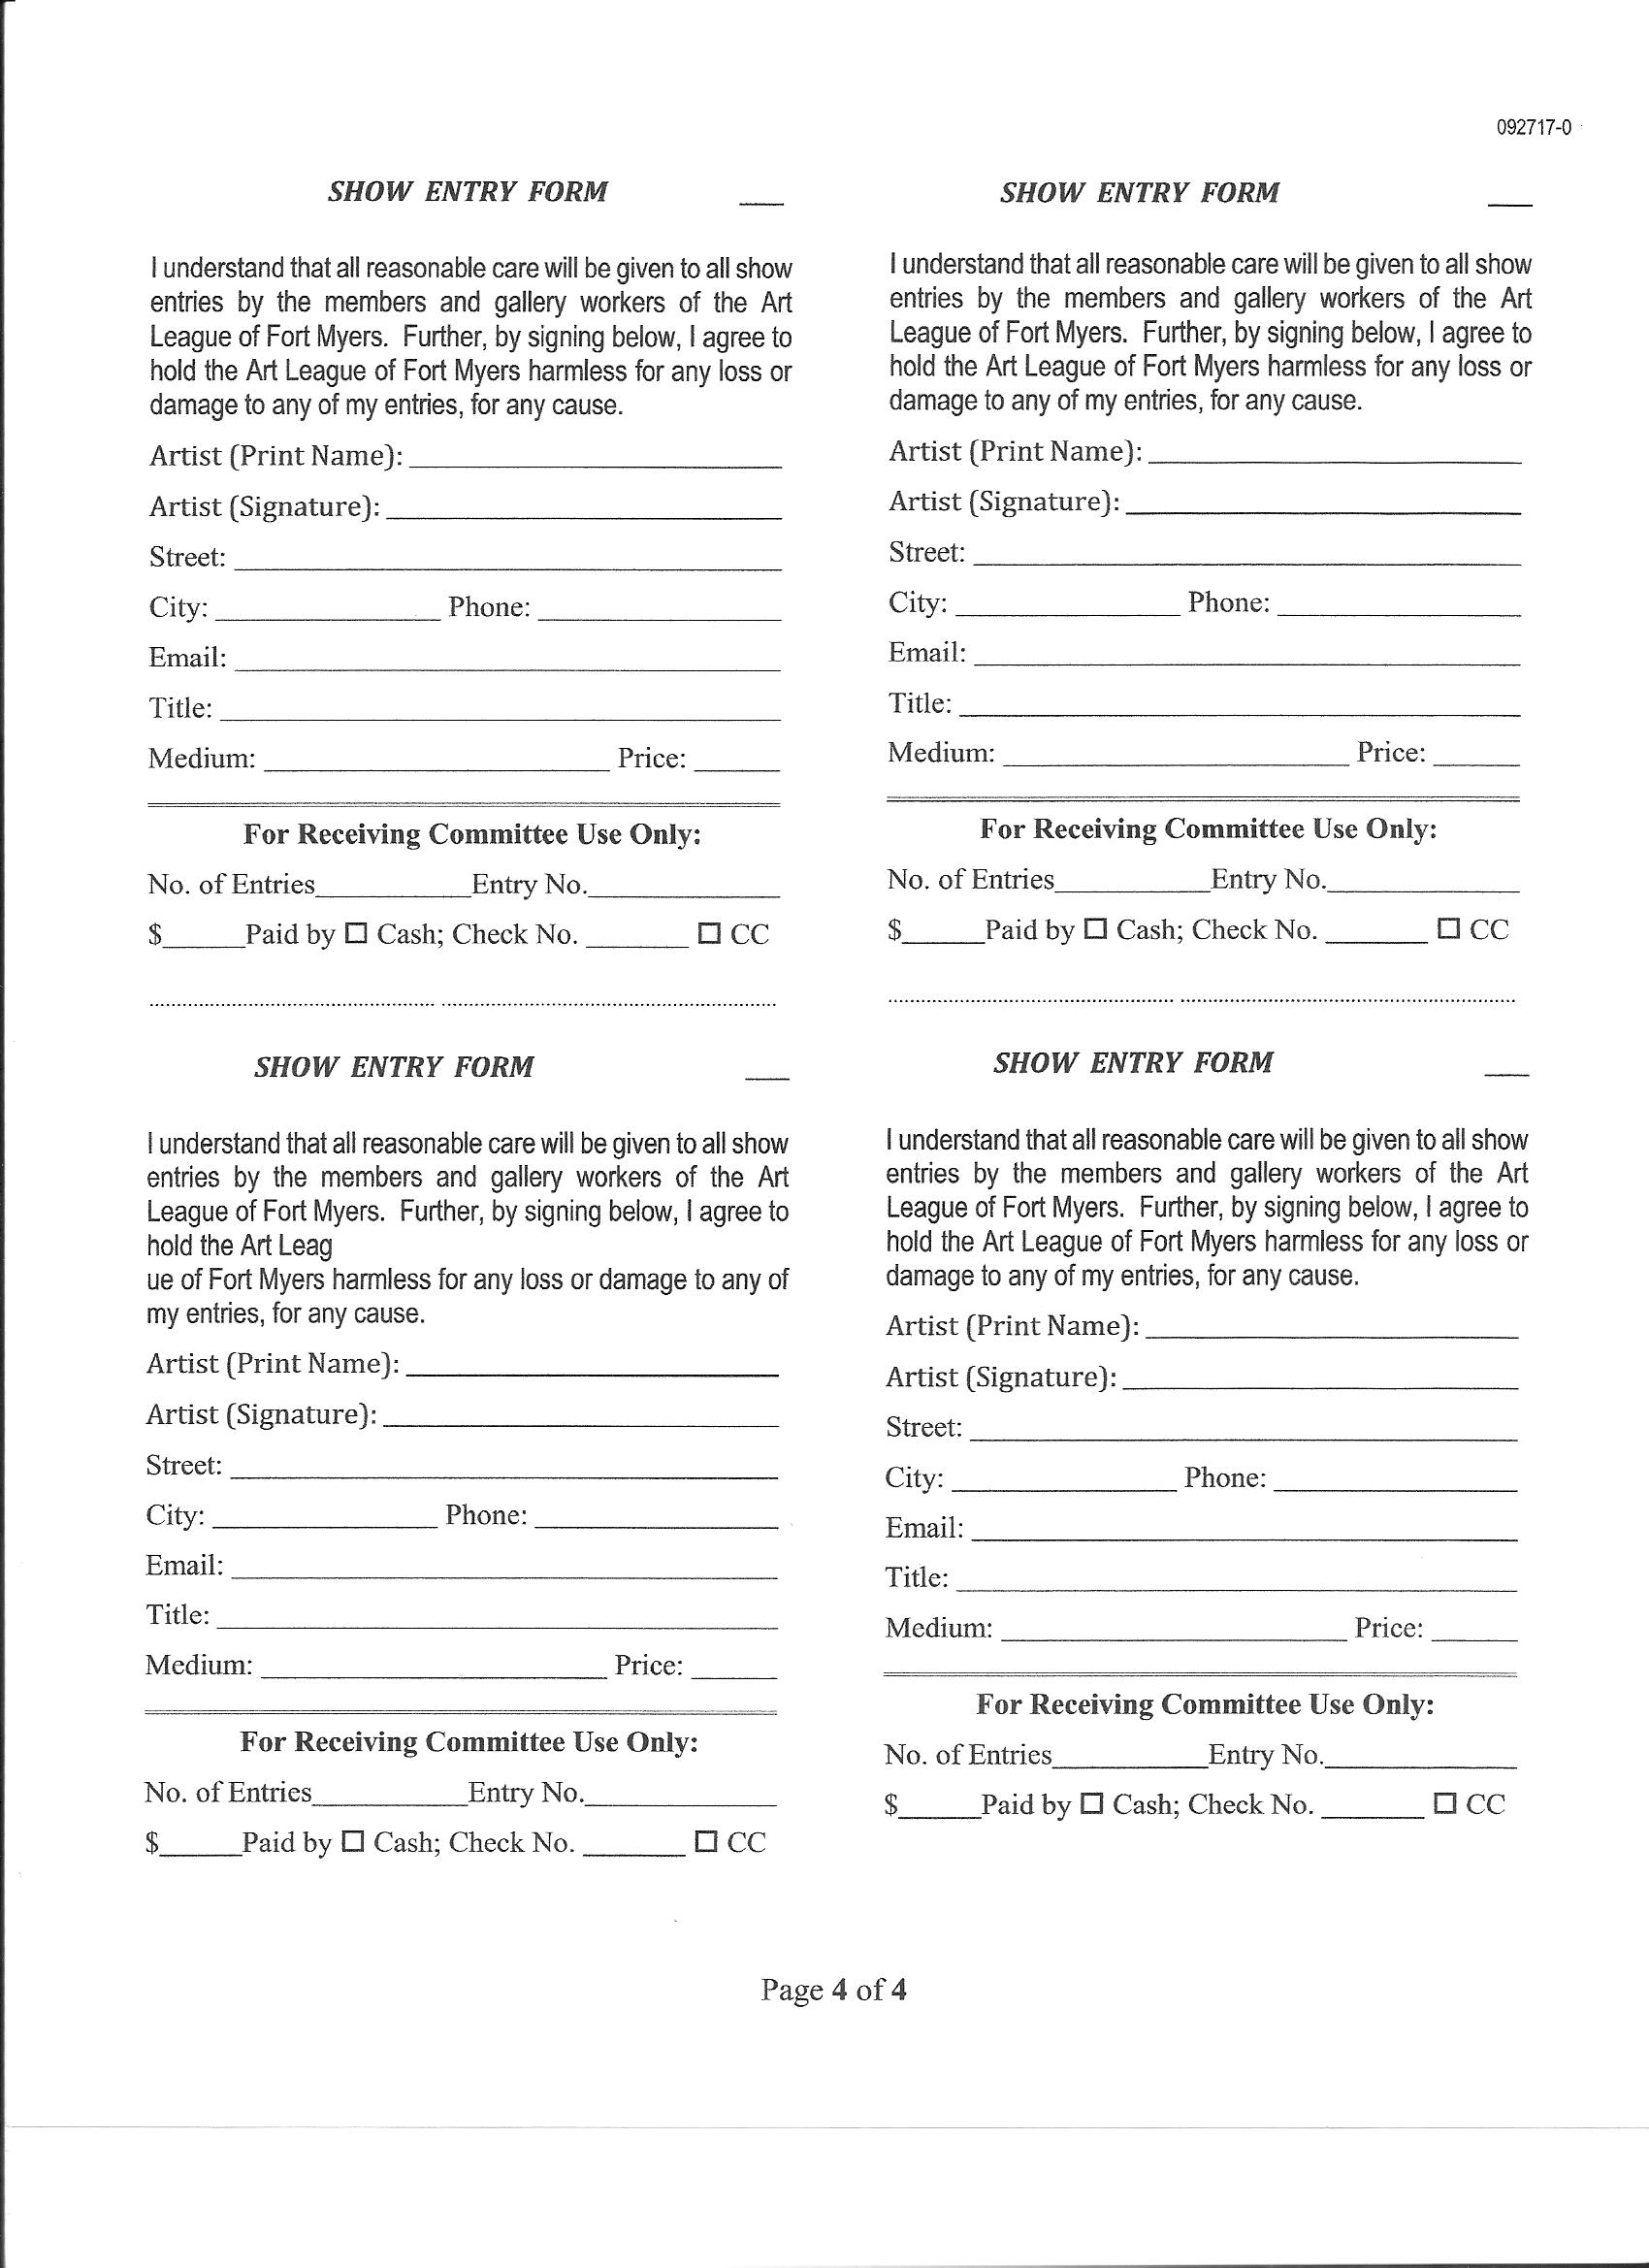 Show entry forms 001.jpg